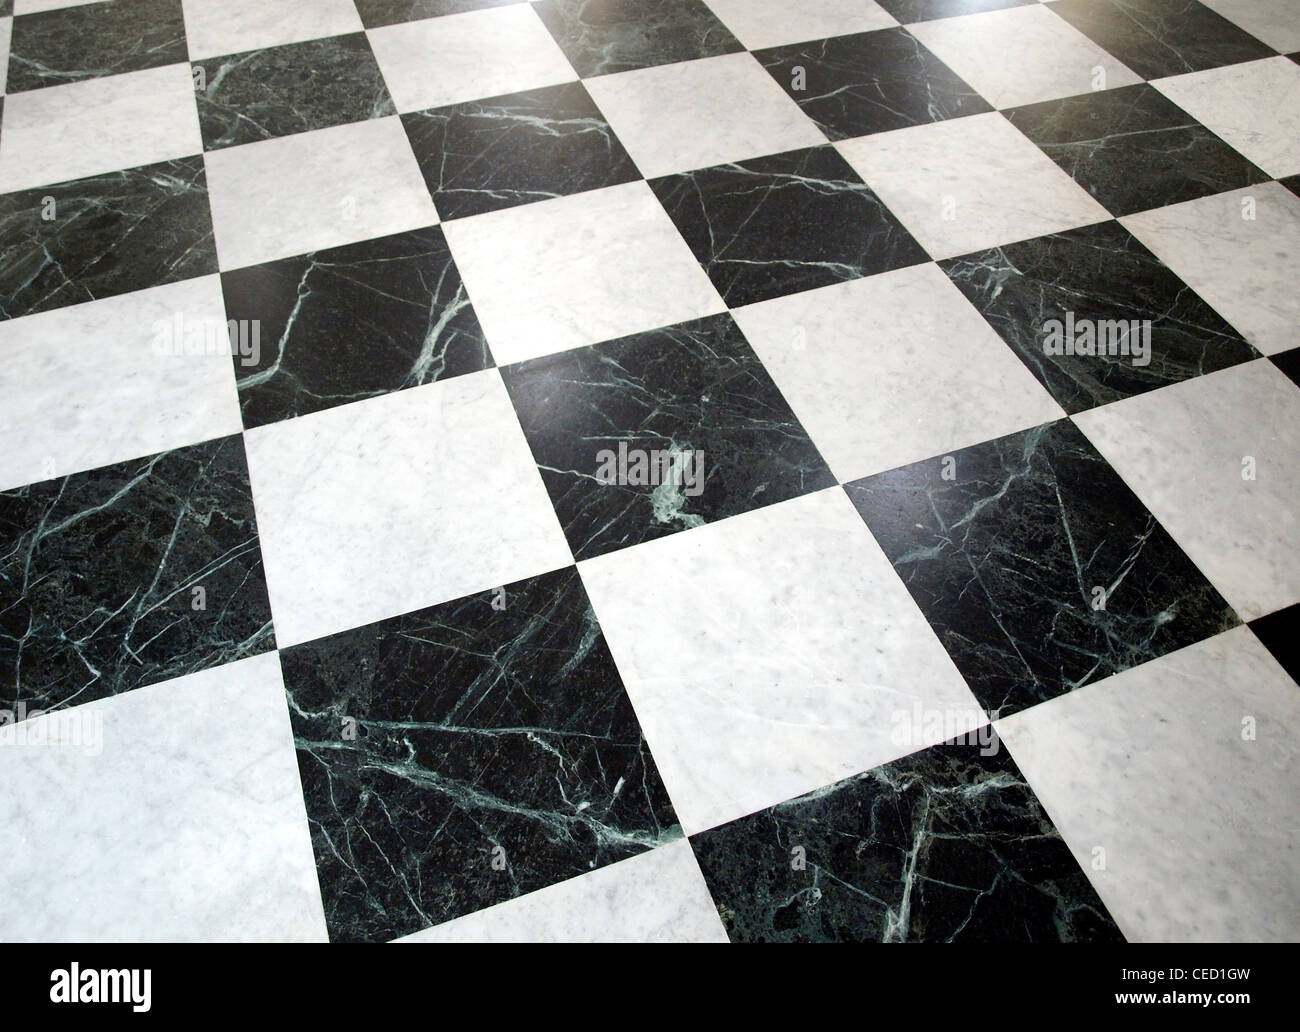 Black and white checked floor useful as a background - Stock Image